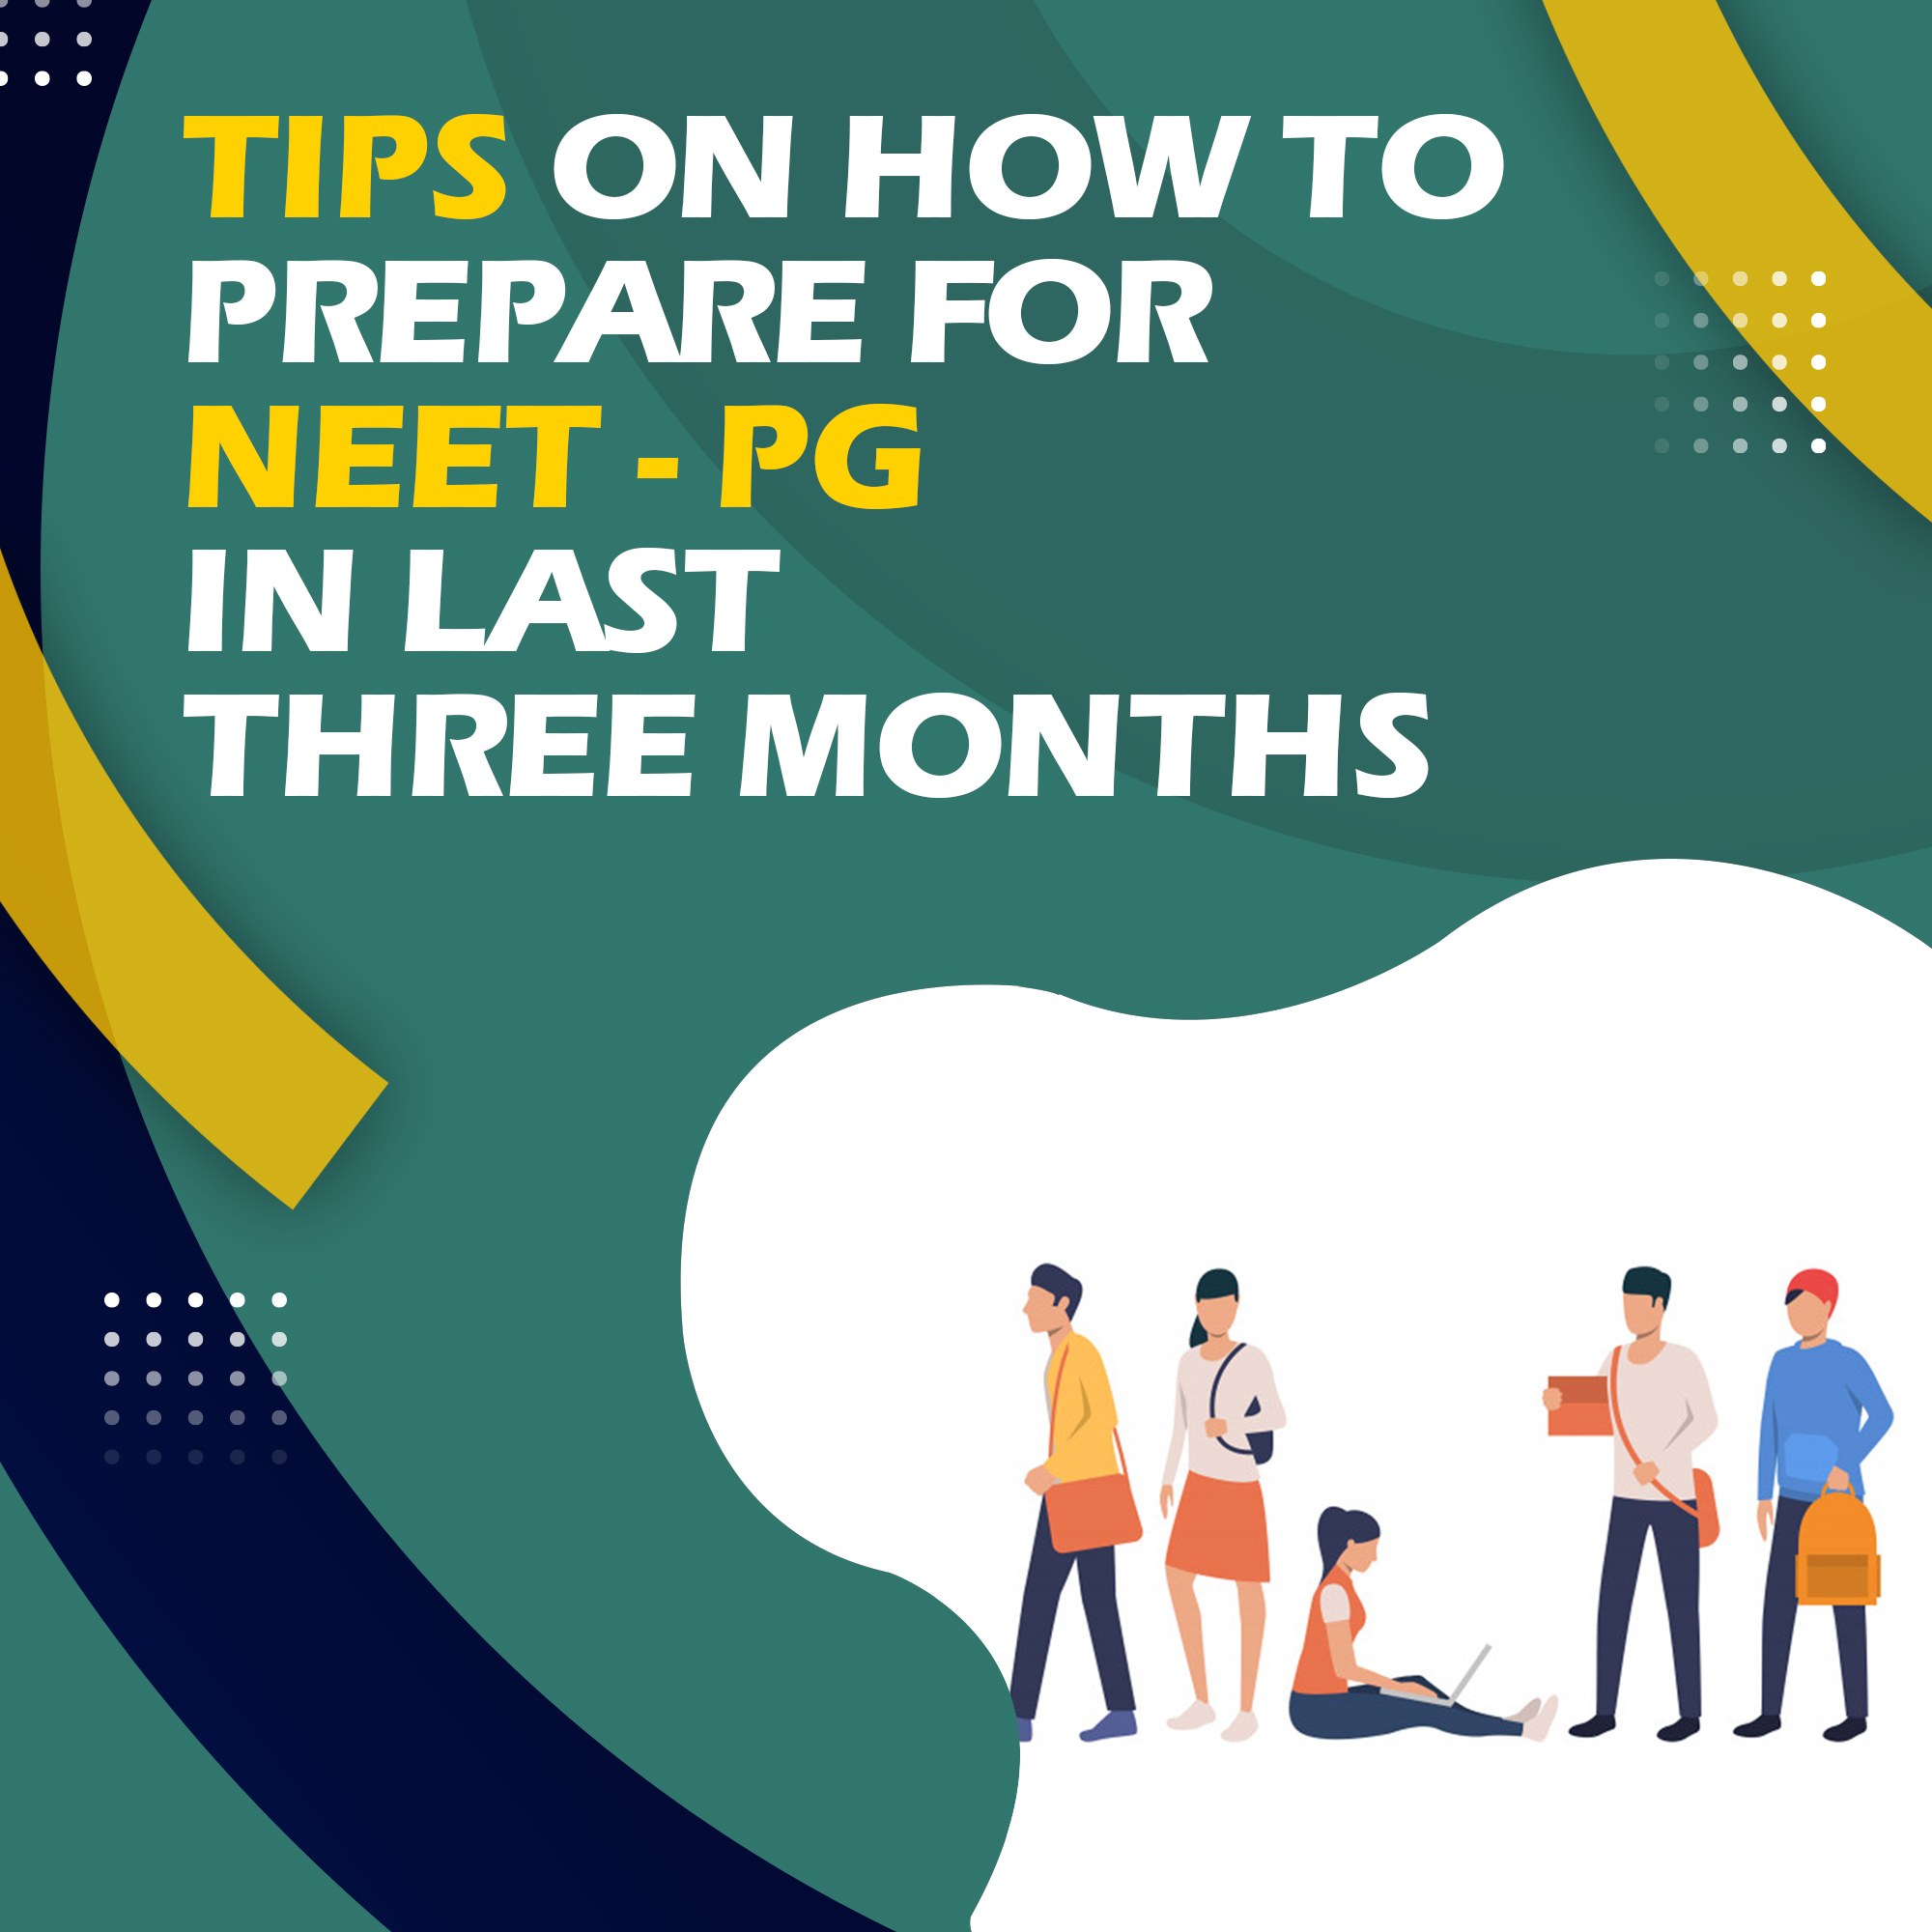 TIPS ON HOW TO PREPARE FOR NEET PG IN LAST THREE MONTHS